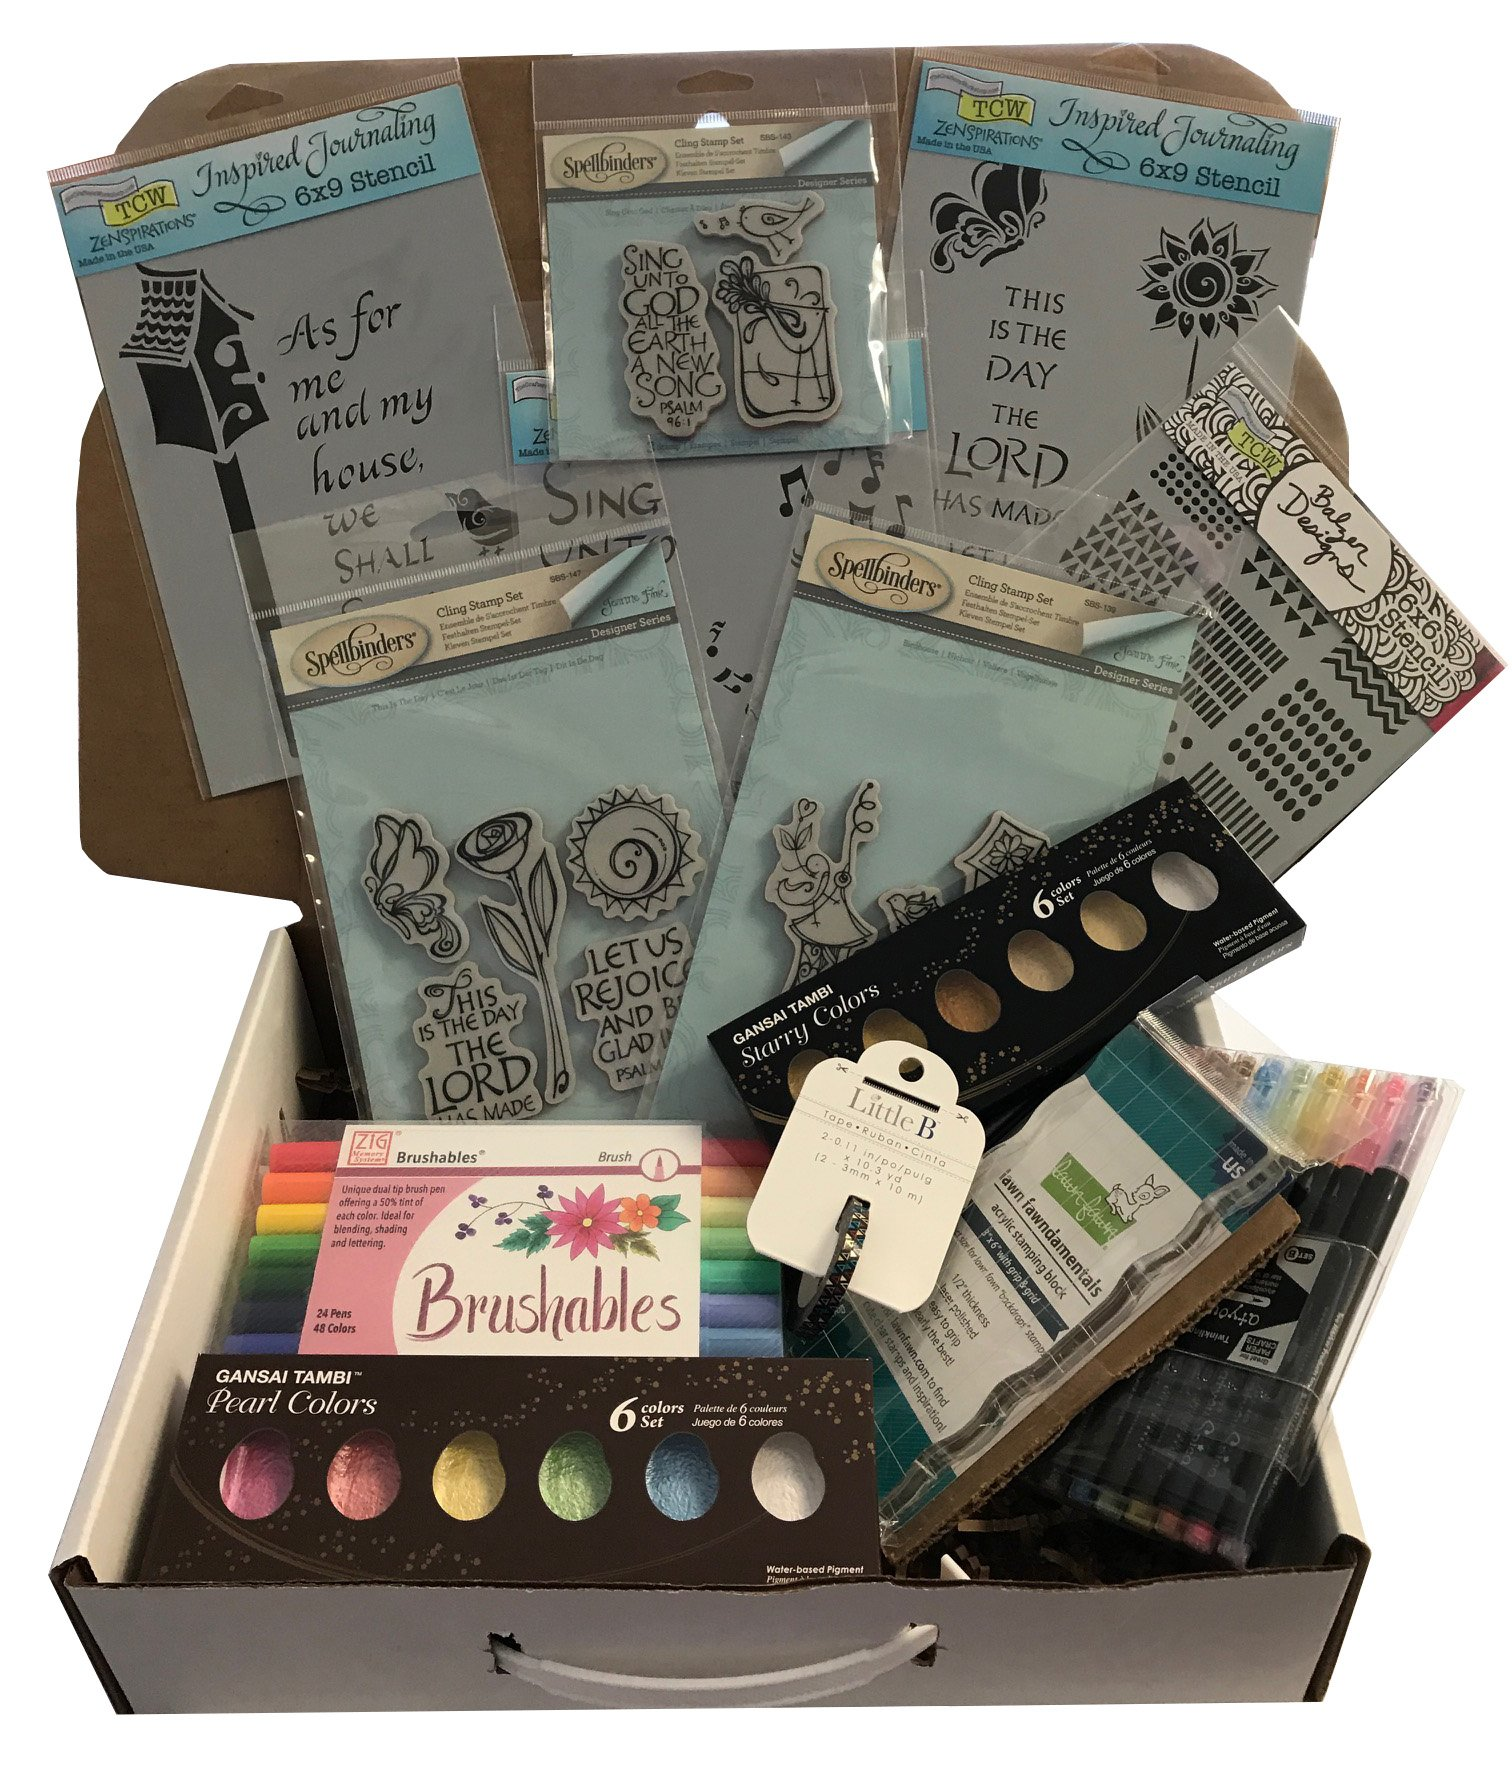 Dandy Deluxe Bible Journaling Kit # BJK03 Includes Markers Watercolors Stencils Multiliner Washi Tape Brush Acrylic Block and Multiple Inspirational Stamp Sets